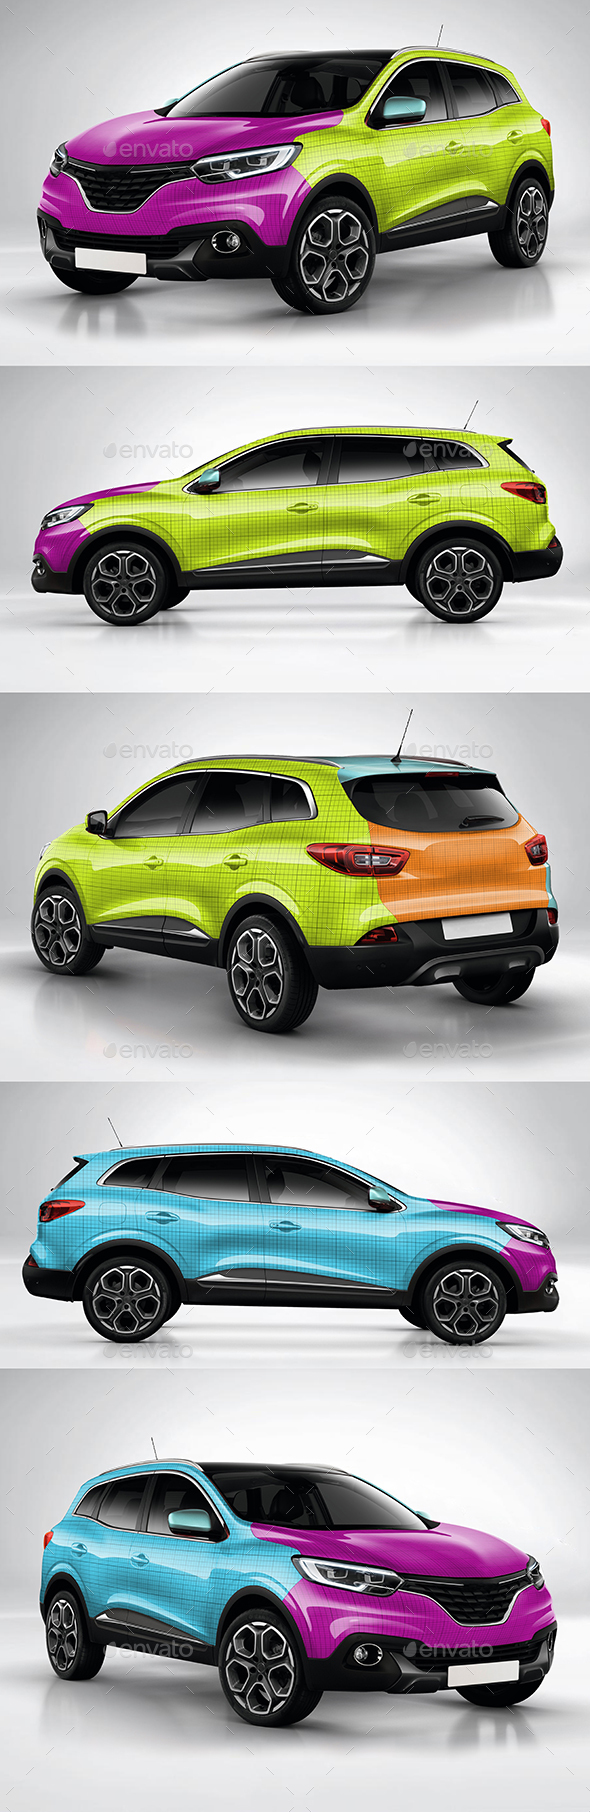 Photorealistic mock-up Kadjar